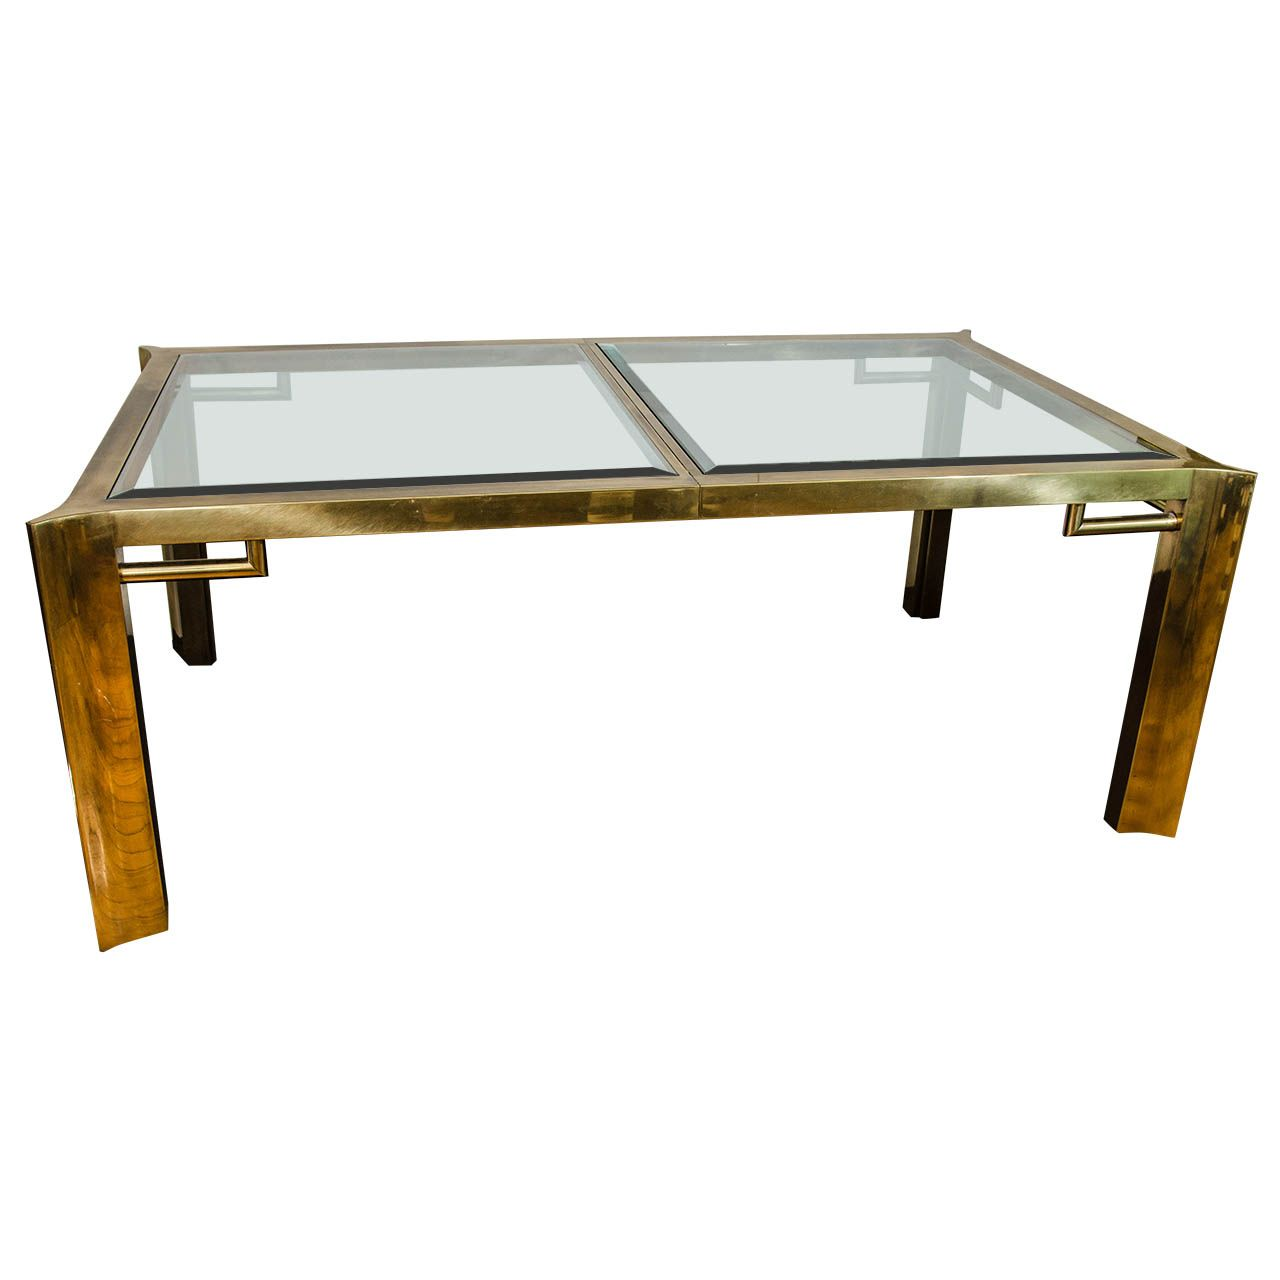 Esstisch Sale Pin Von Jasmin Gurewitz Auf Tabels Glass Dining Table Table